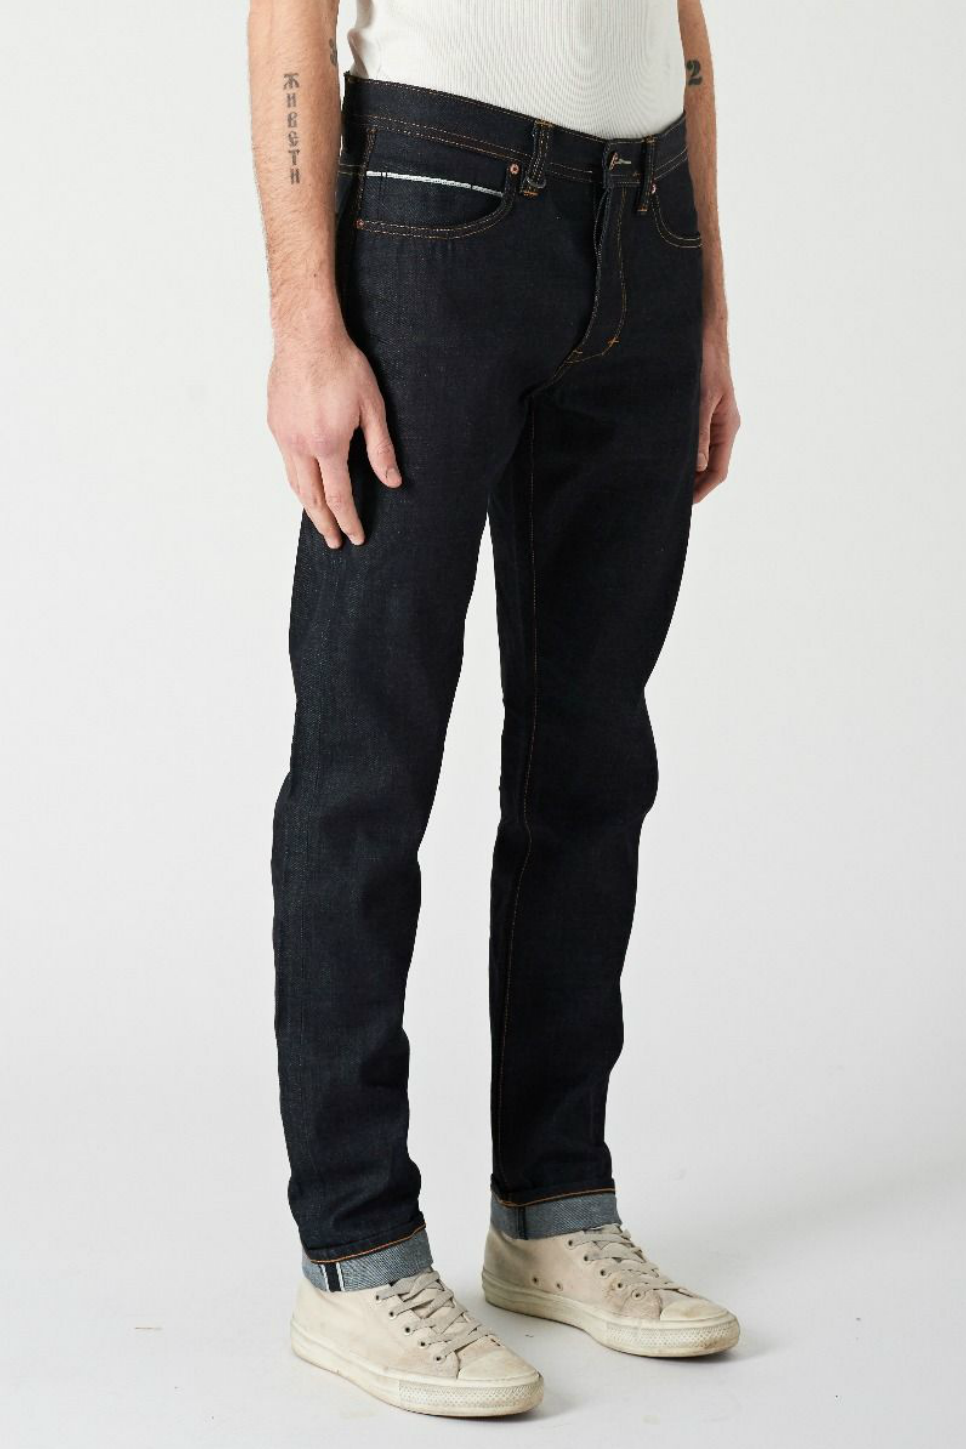 NEUW - Lou Slim - Raw Selvedge - Profile